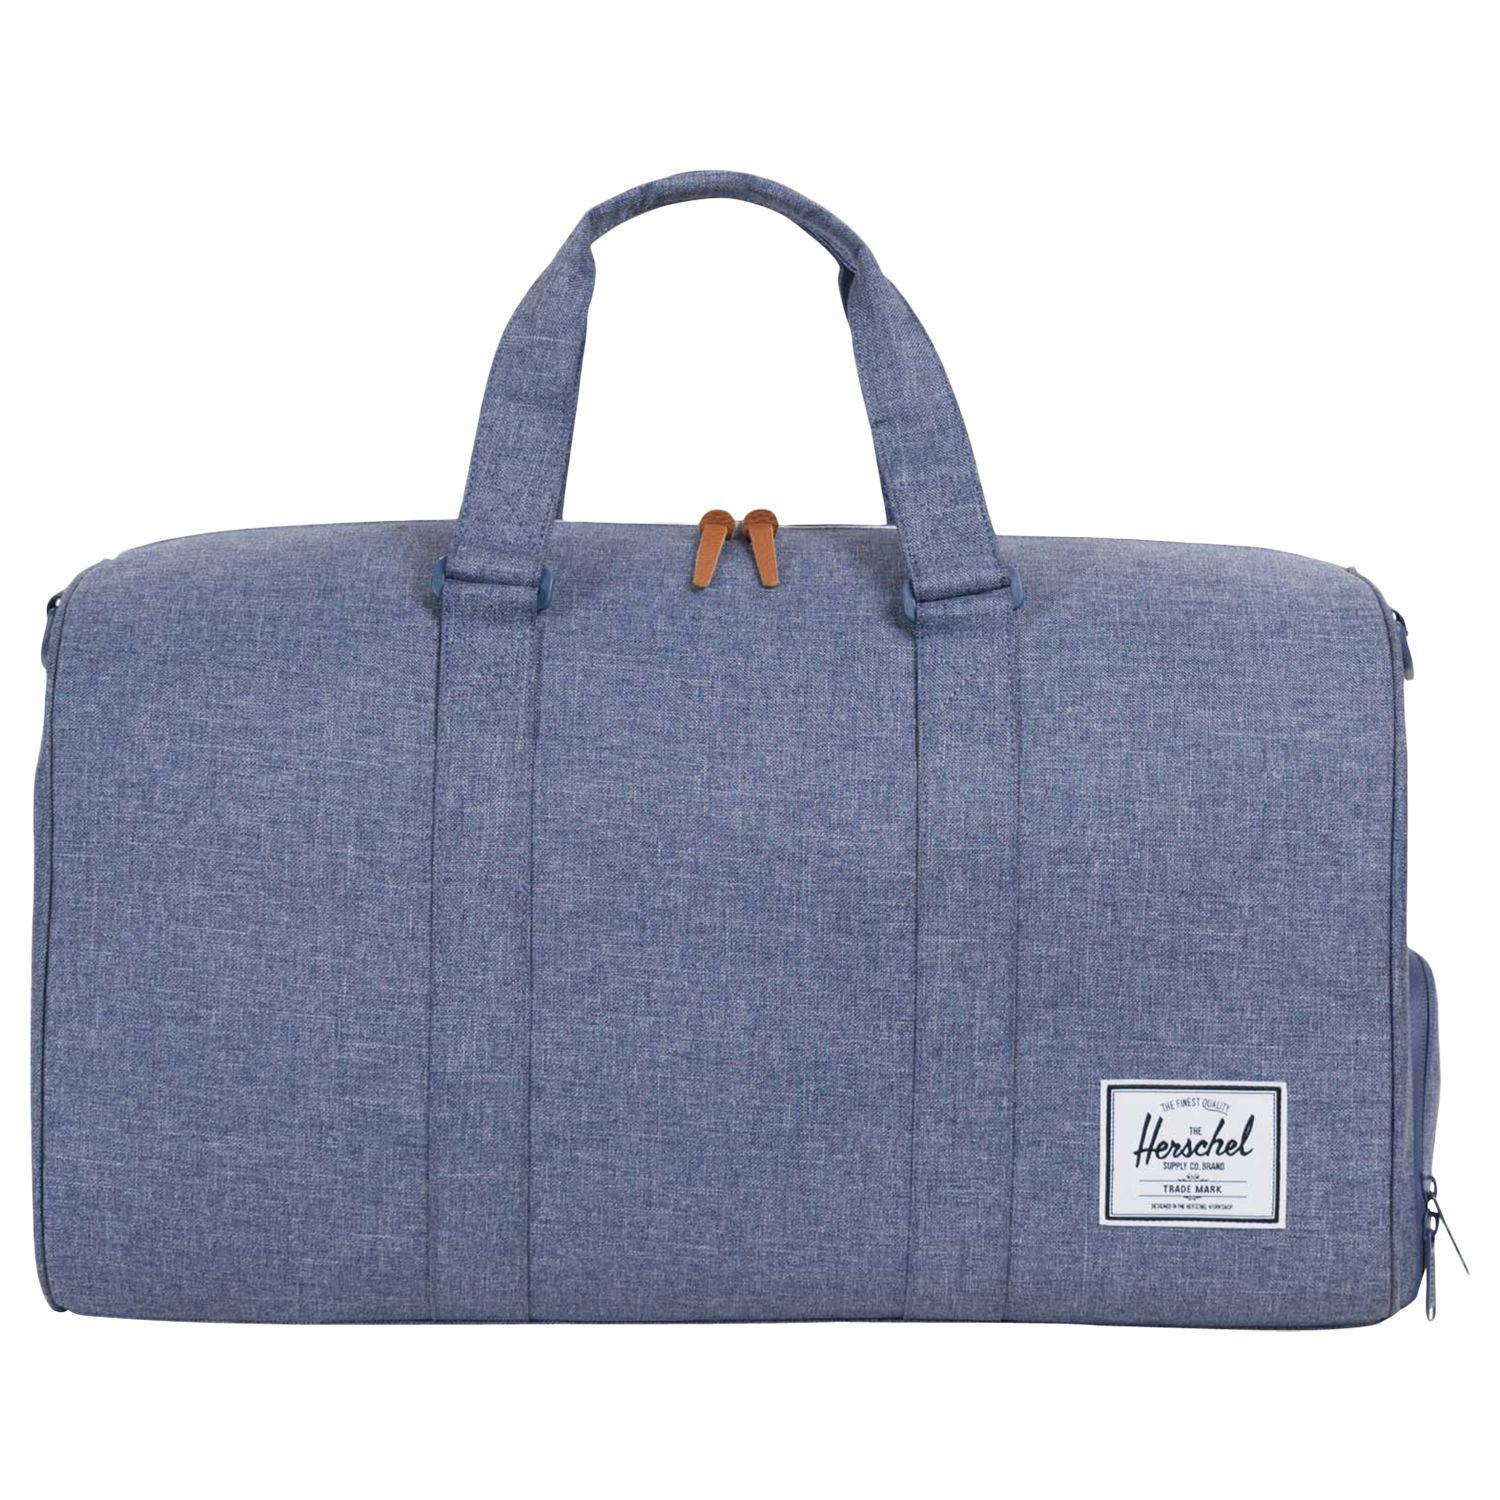 a7f114cba7 Herschel Supply Co. Novel Duffle Holdall in Blue for Men - Lyst